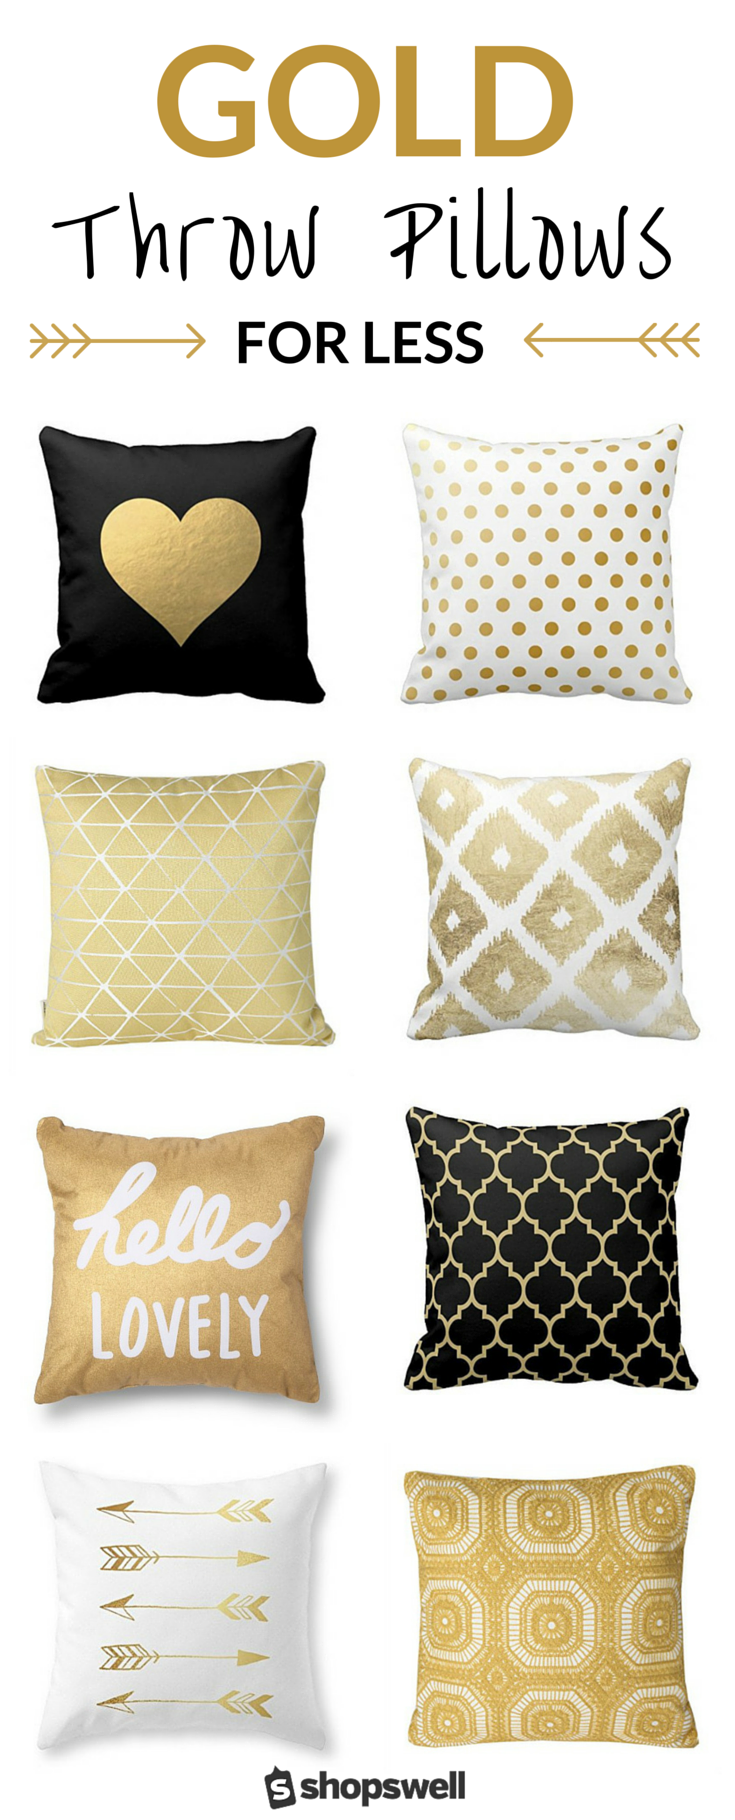 Cheap Decorative Pillows Under $10 Delectable The Midas Touch 20 Fabulously Affordable Gold Throw Pillows 2018